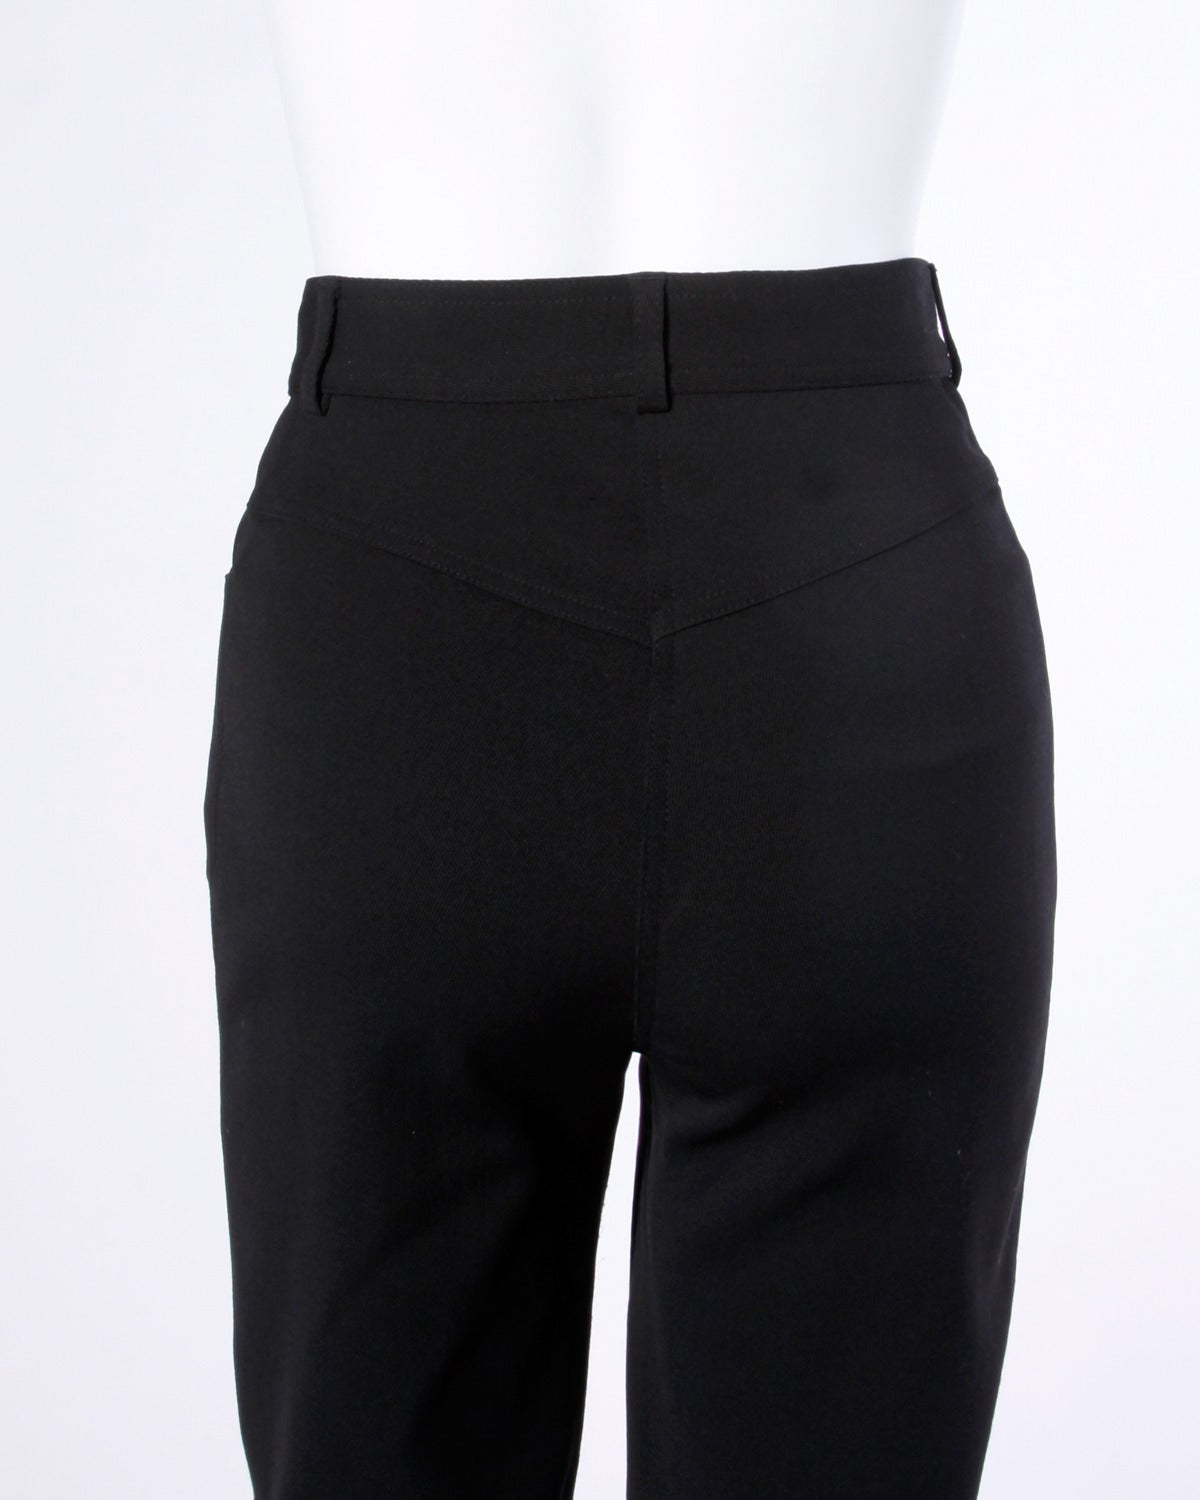 Moschino Vintage Black Wool High Waisted Pants with Heart Button For Sale 3